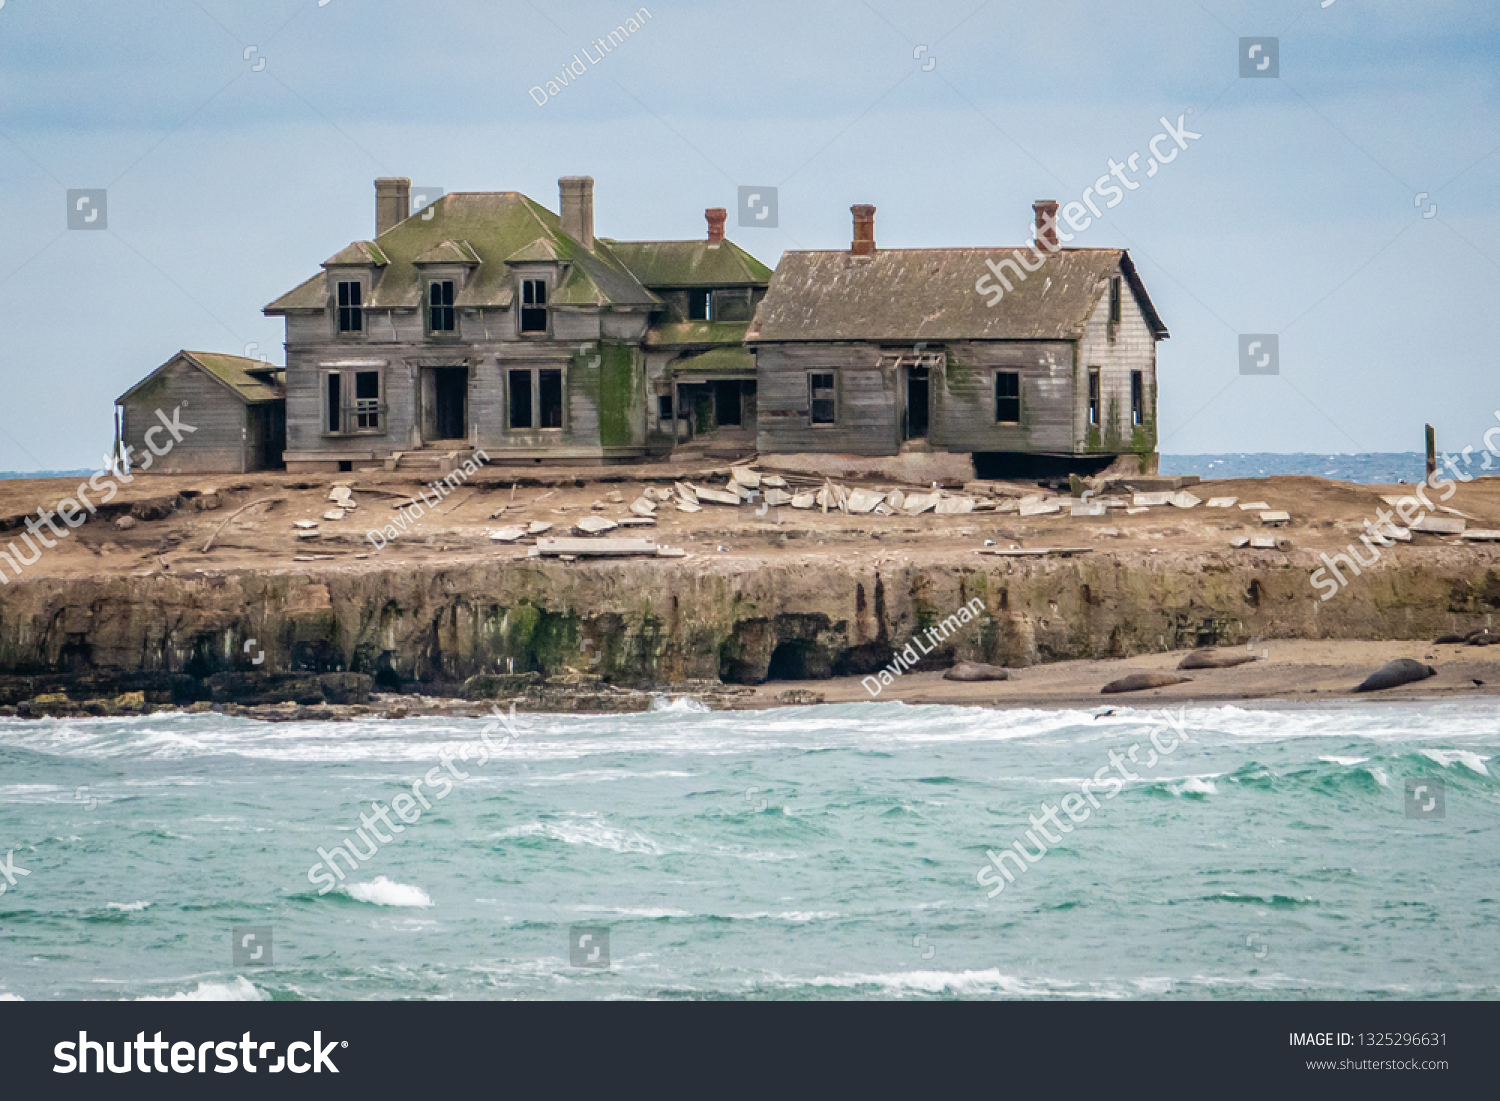 An old and weathered abandoned house remains on Ano Nuevo Island, with Northern Elephant Seals resting on the beach below.